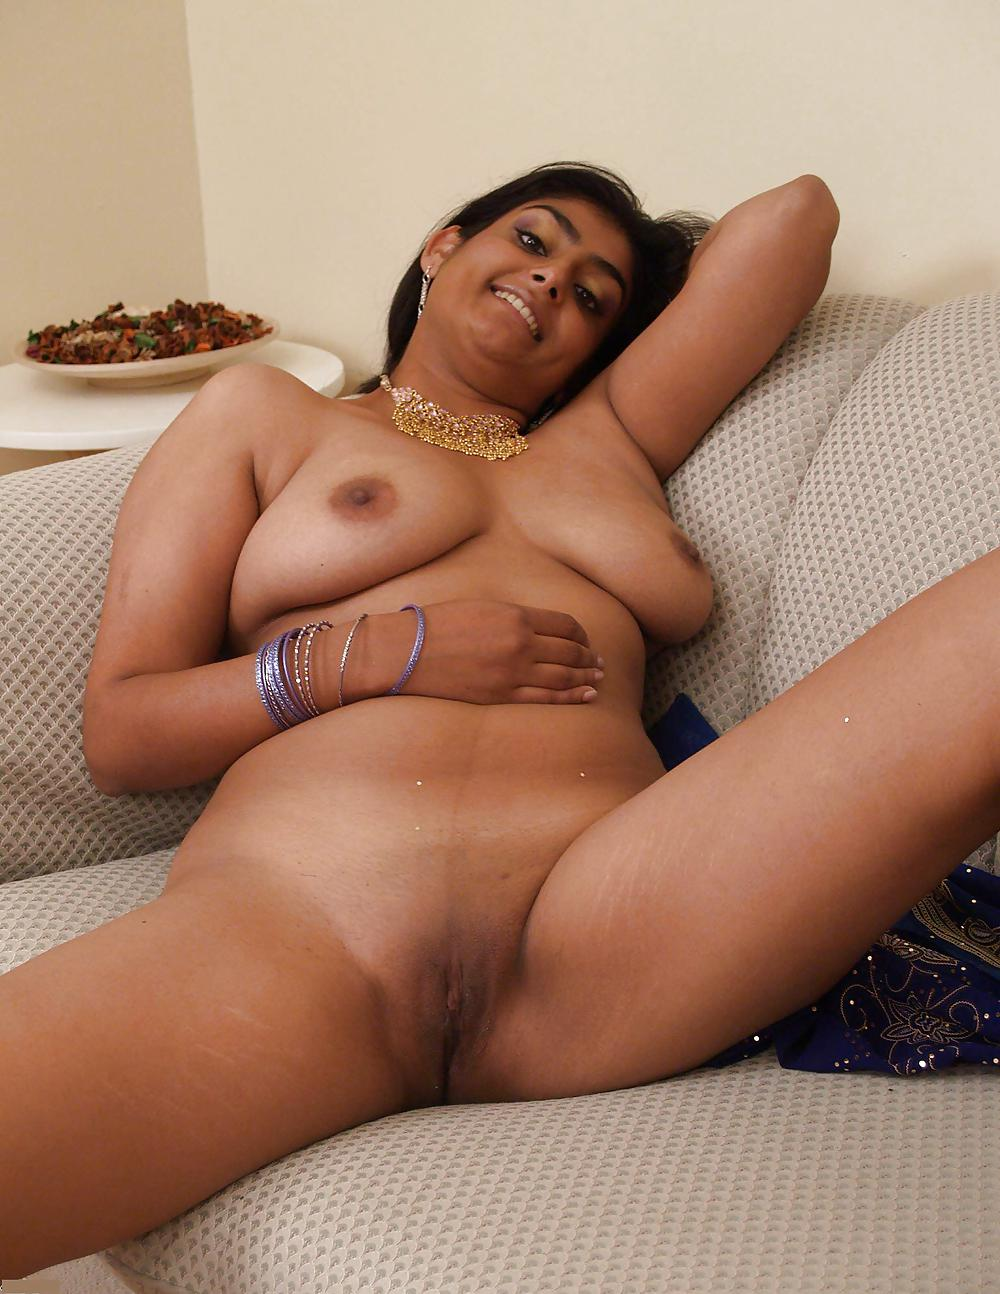 couples-gujrati-girls-nudes-black-girls-ass